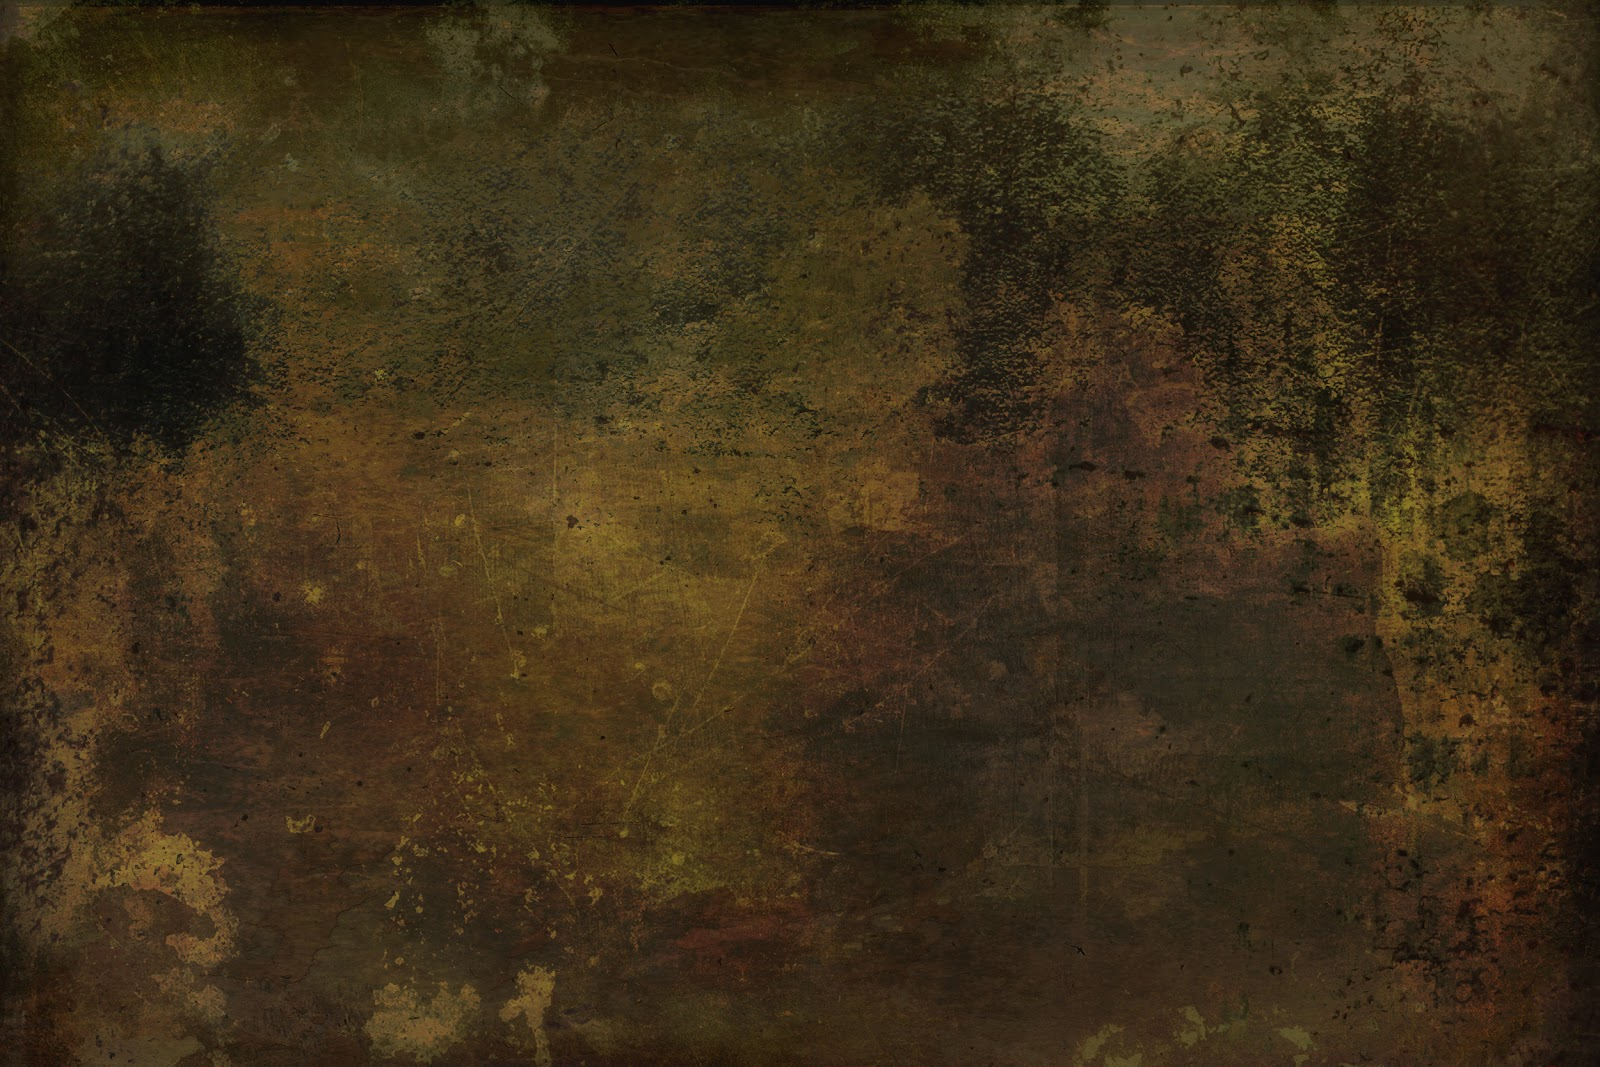 grungy wood background textures - photo #34